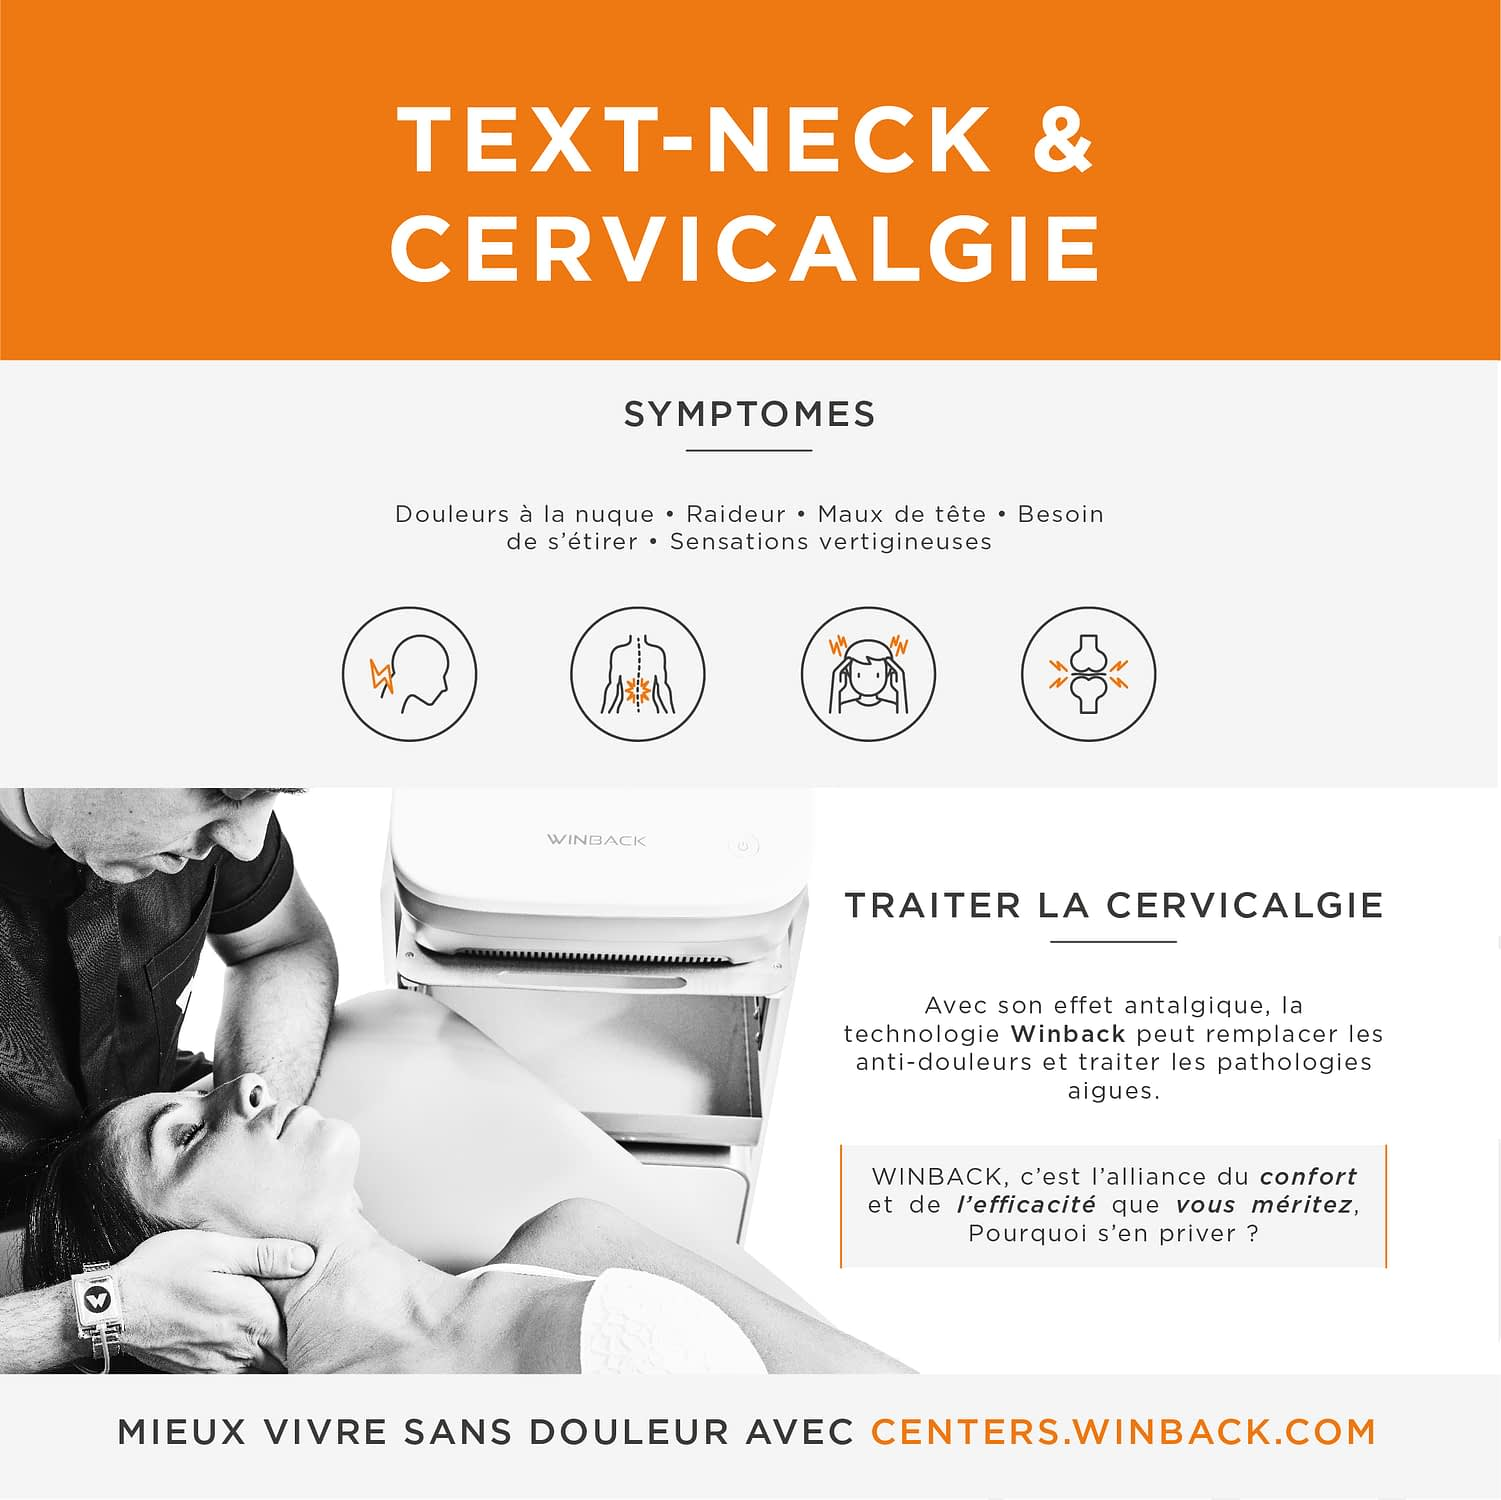 Cervicalgies text-neck